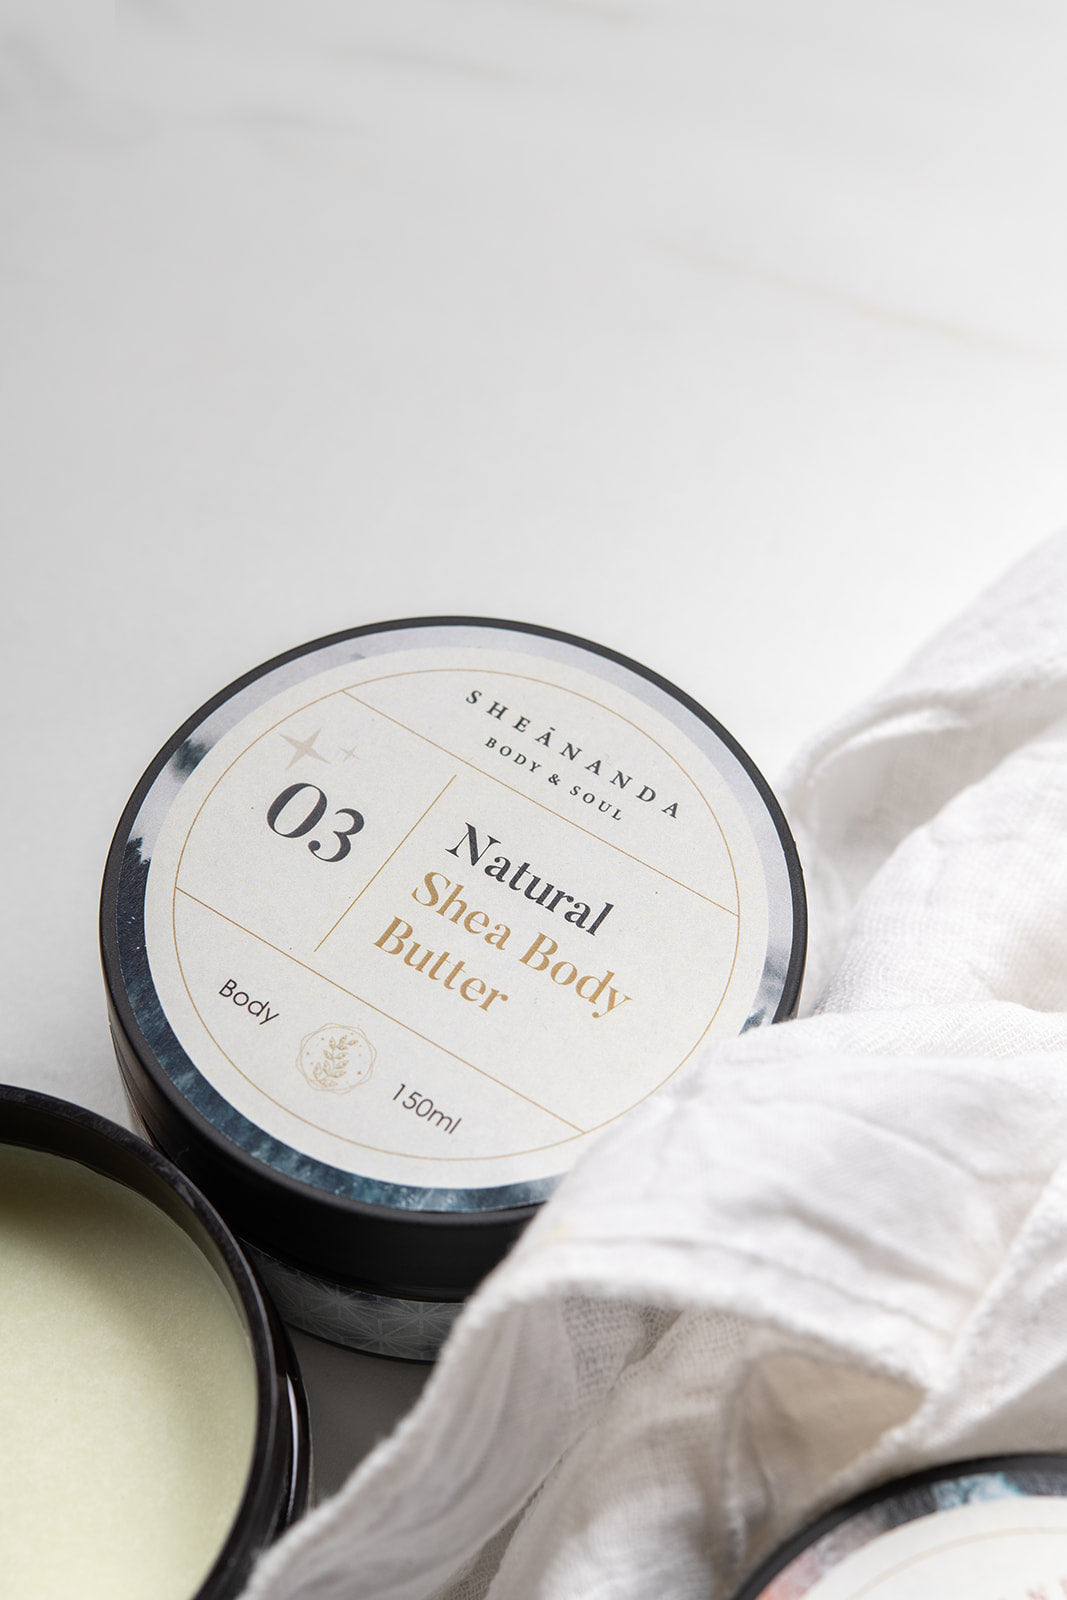 100% Natural Body Butter: Shea Butter, Olive Oil, Cocoa Butter & Coconut Oil